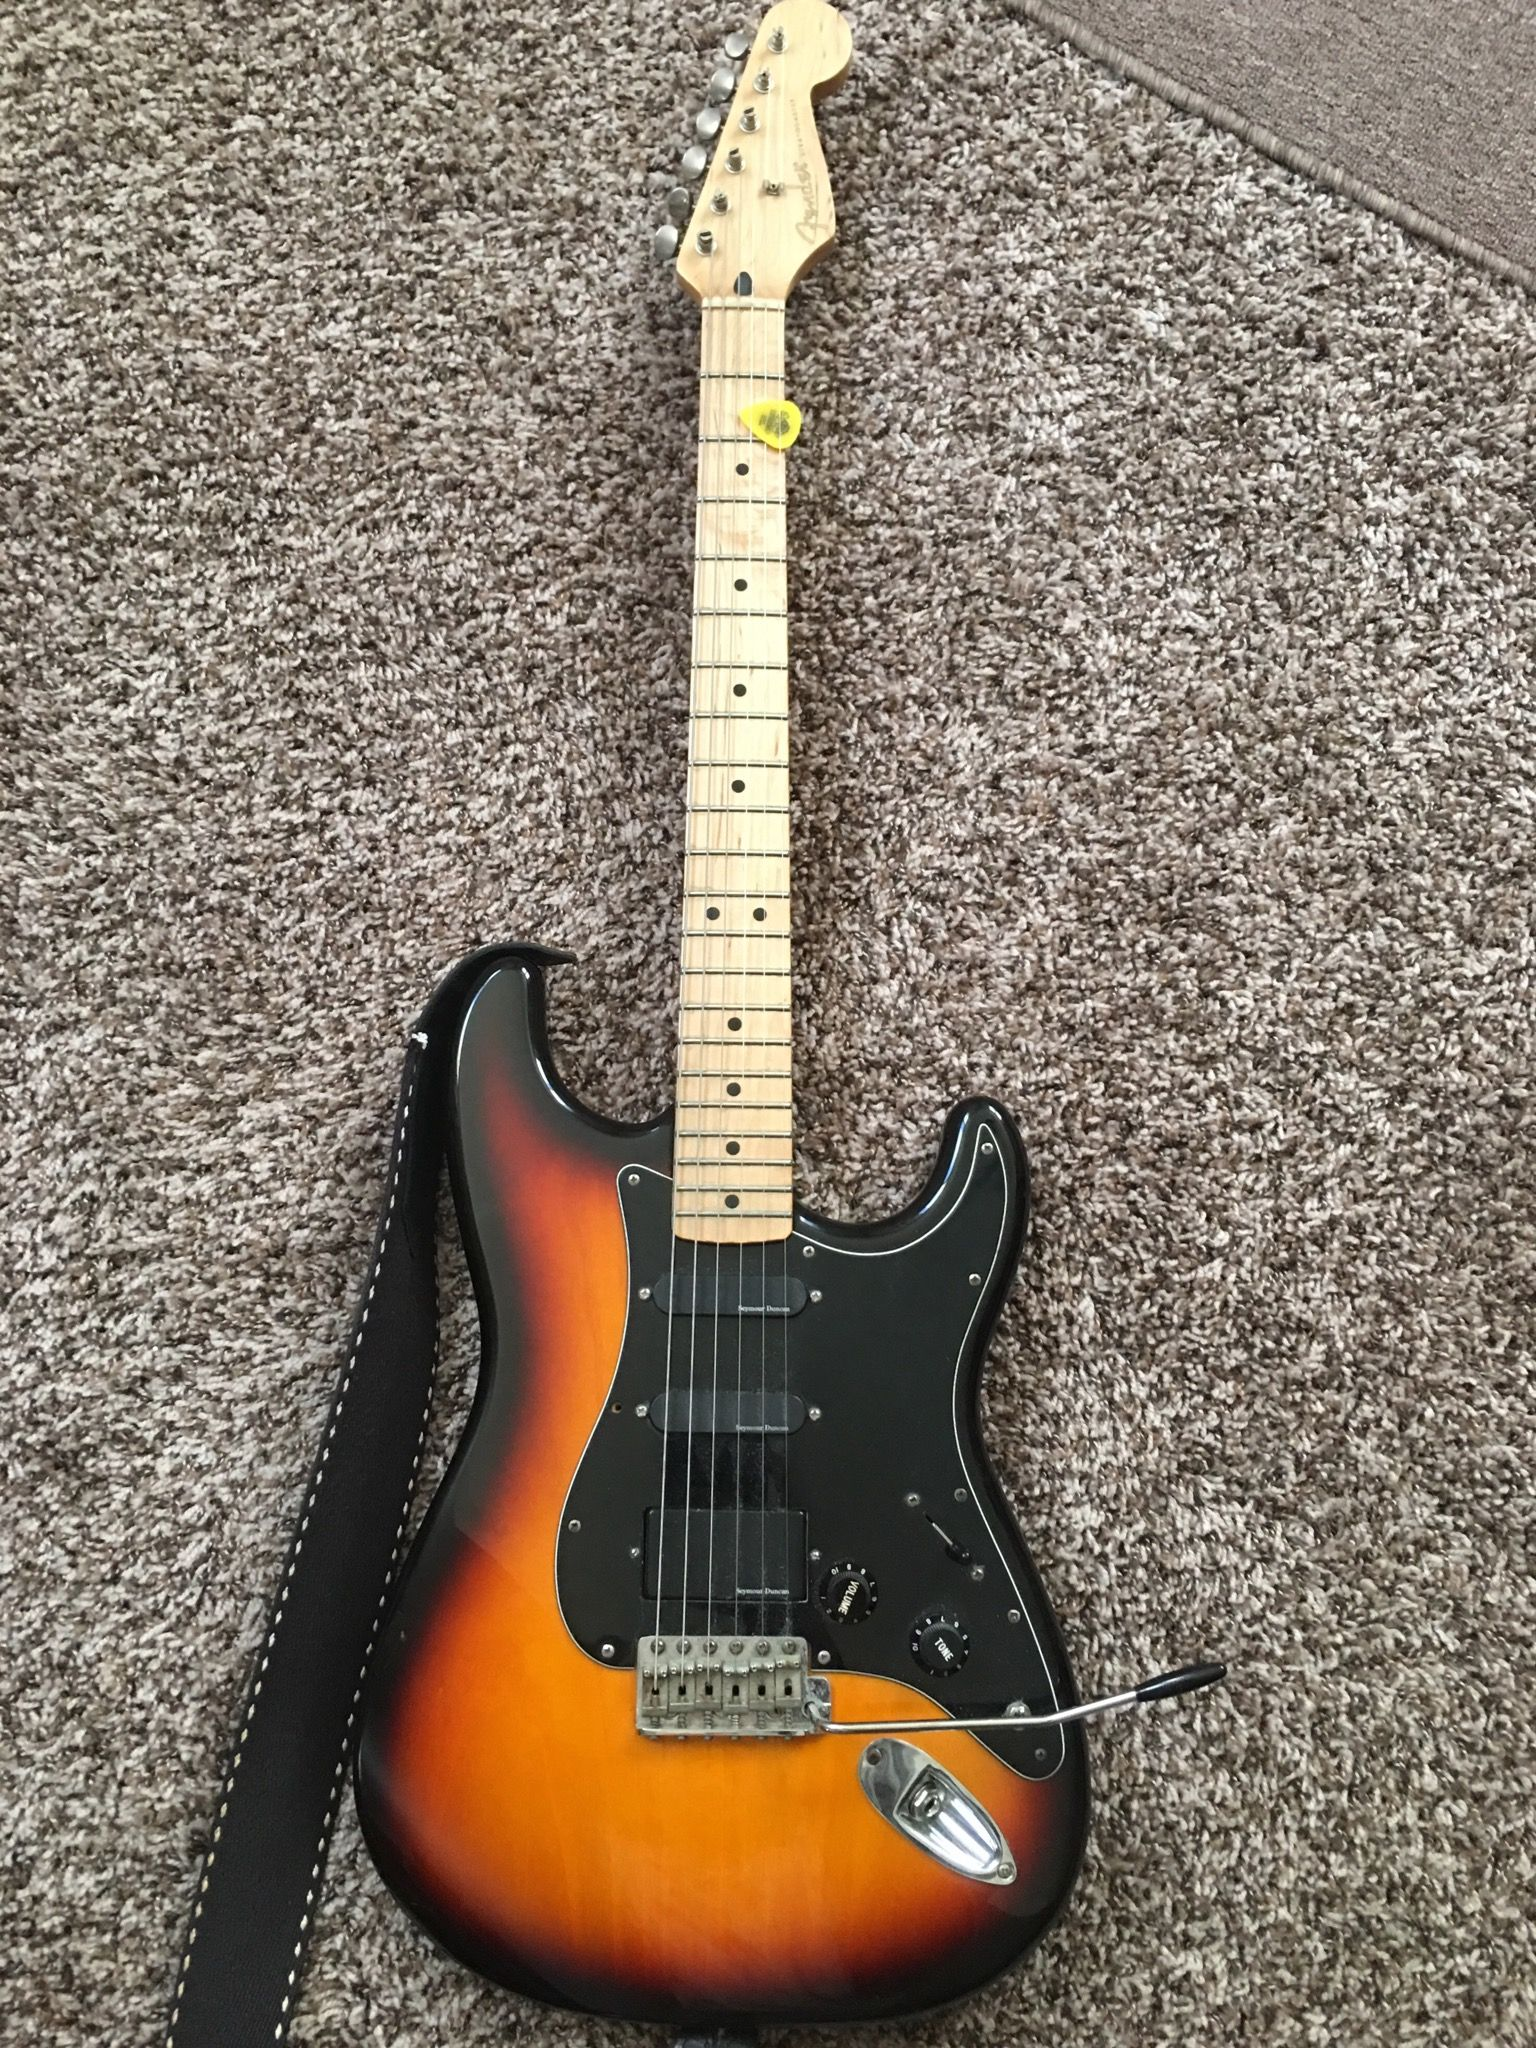 My 1995 MIM Fender Stratocaster  I bought it new in 95 and